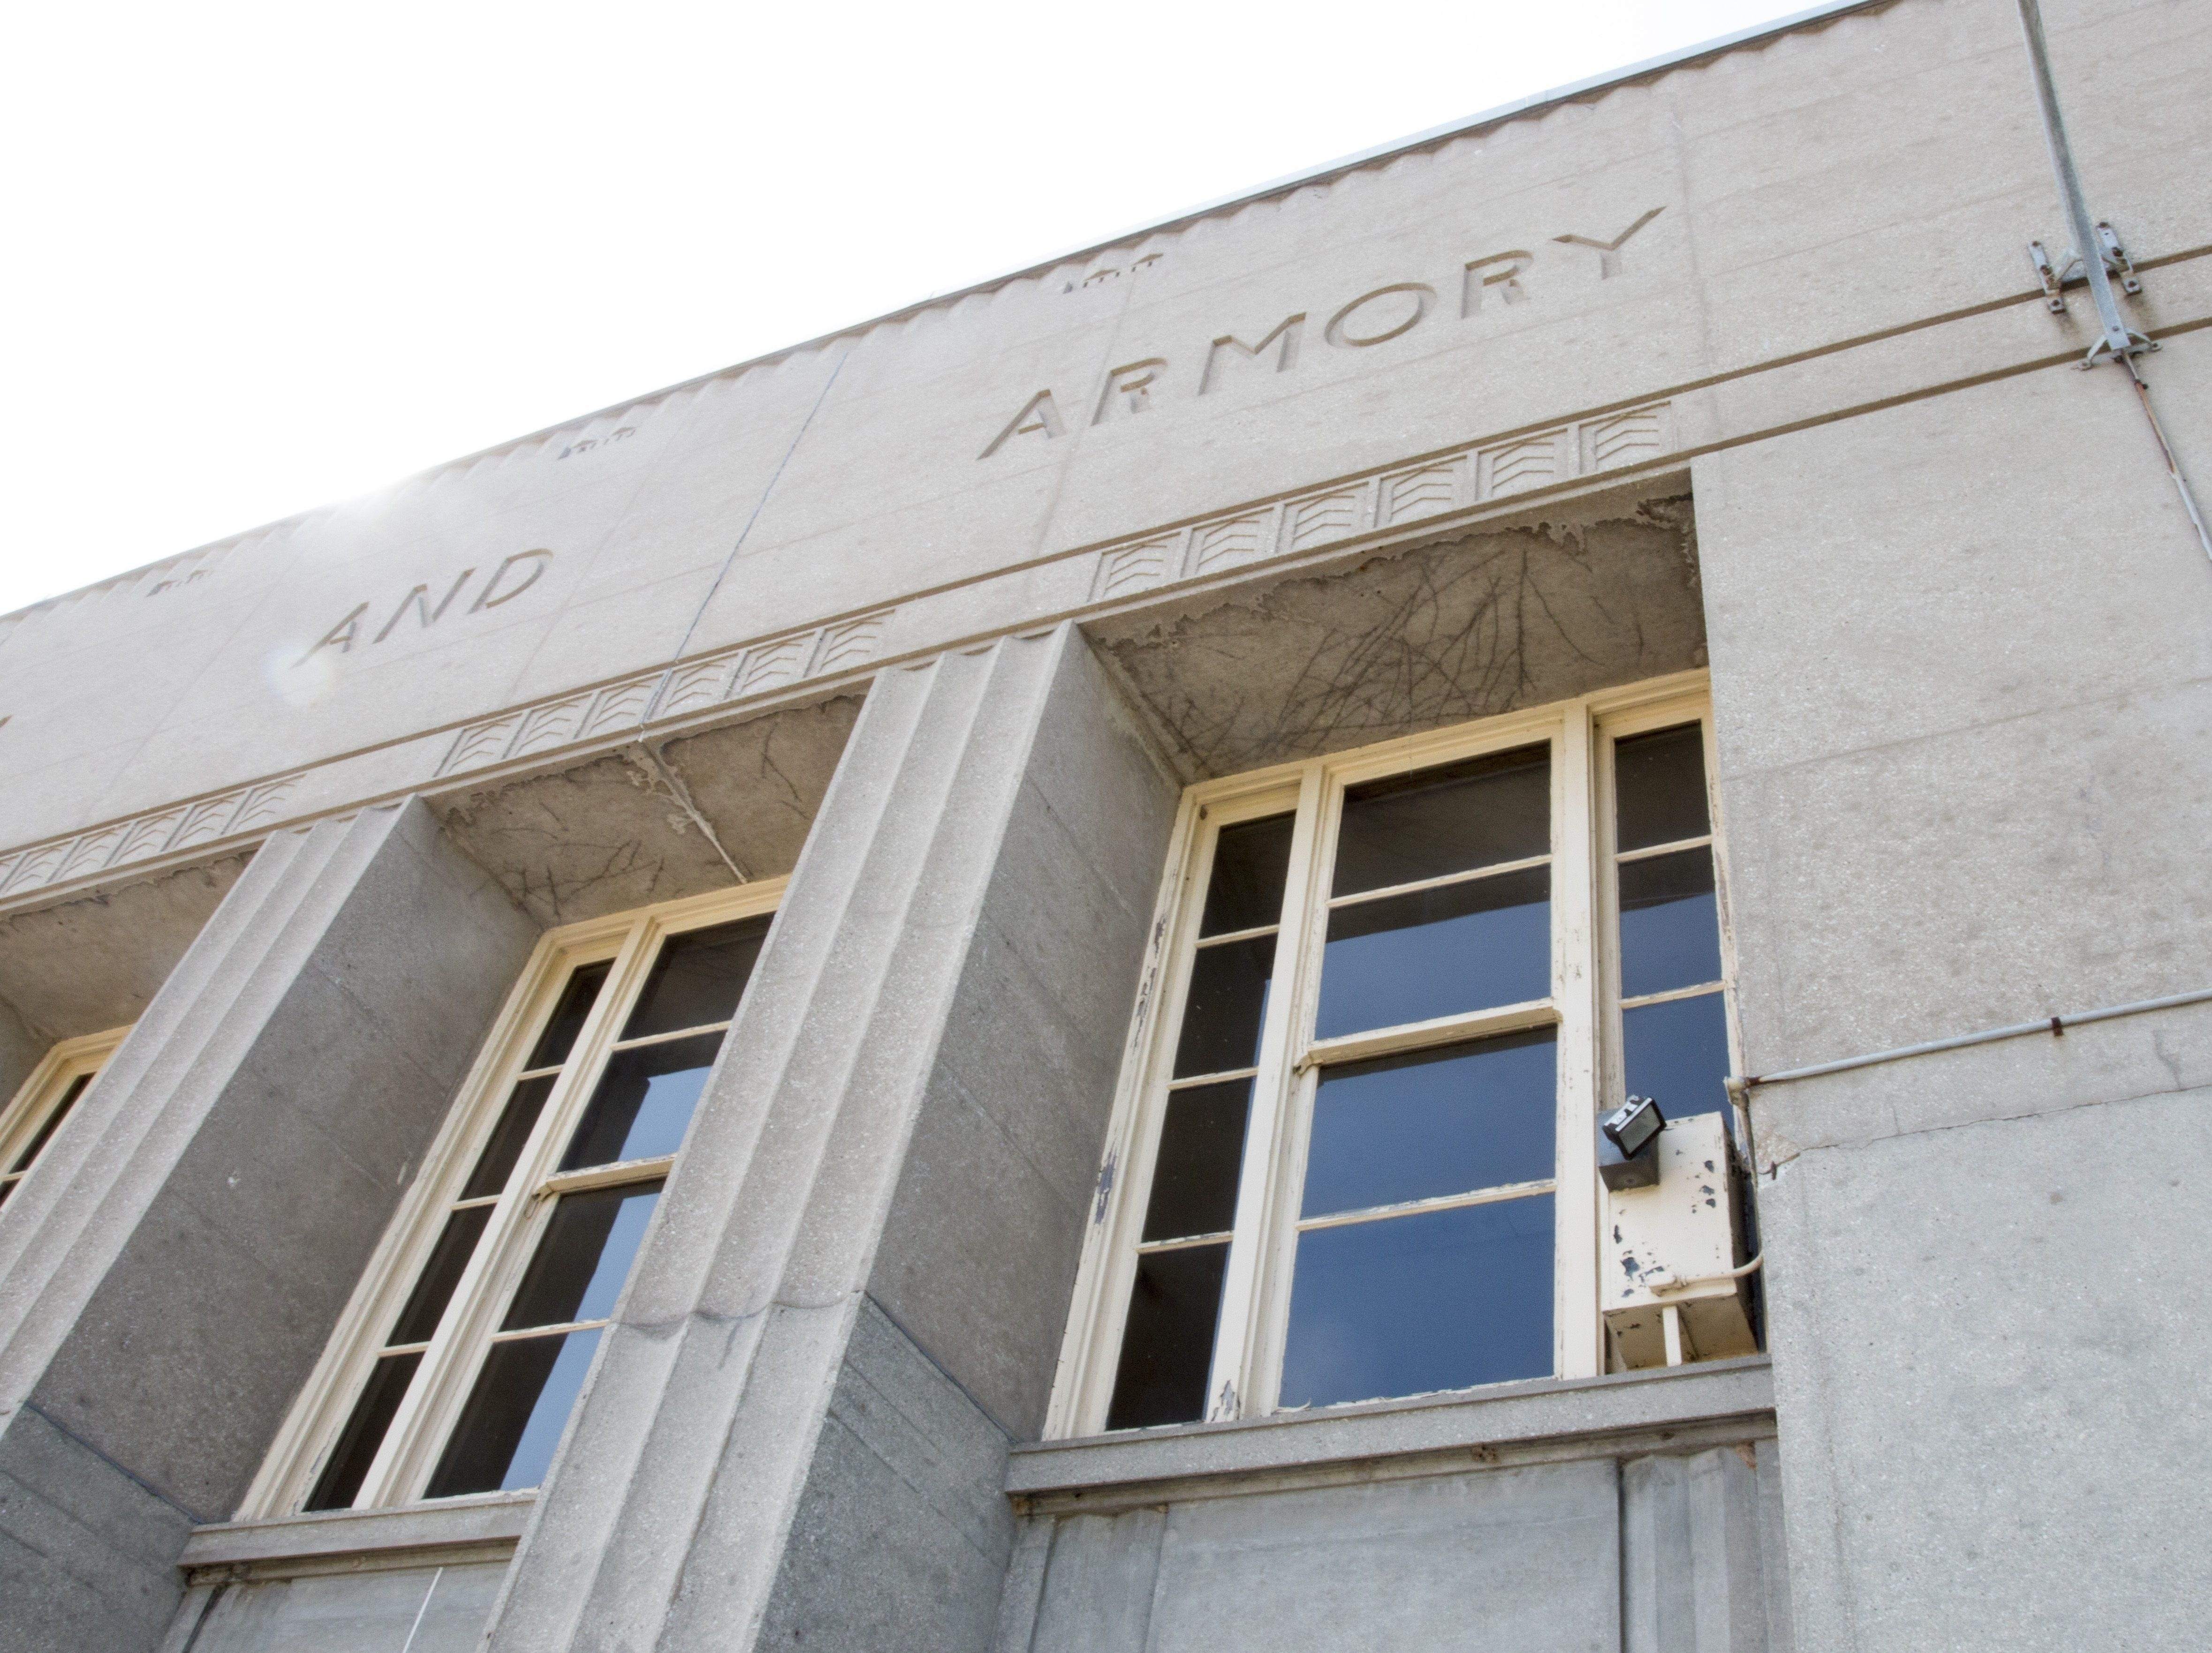 Sheboygan Armory: City to renegotiate sale, community group vows 'We're not giving up'